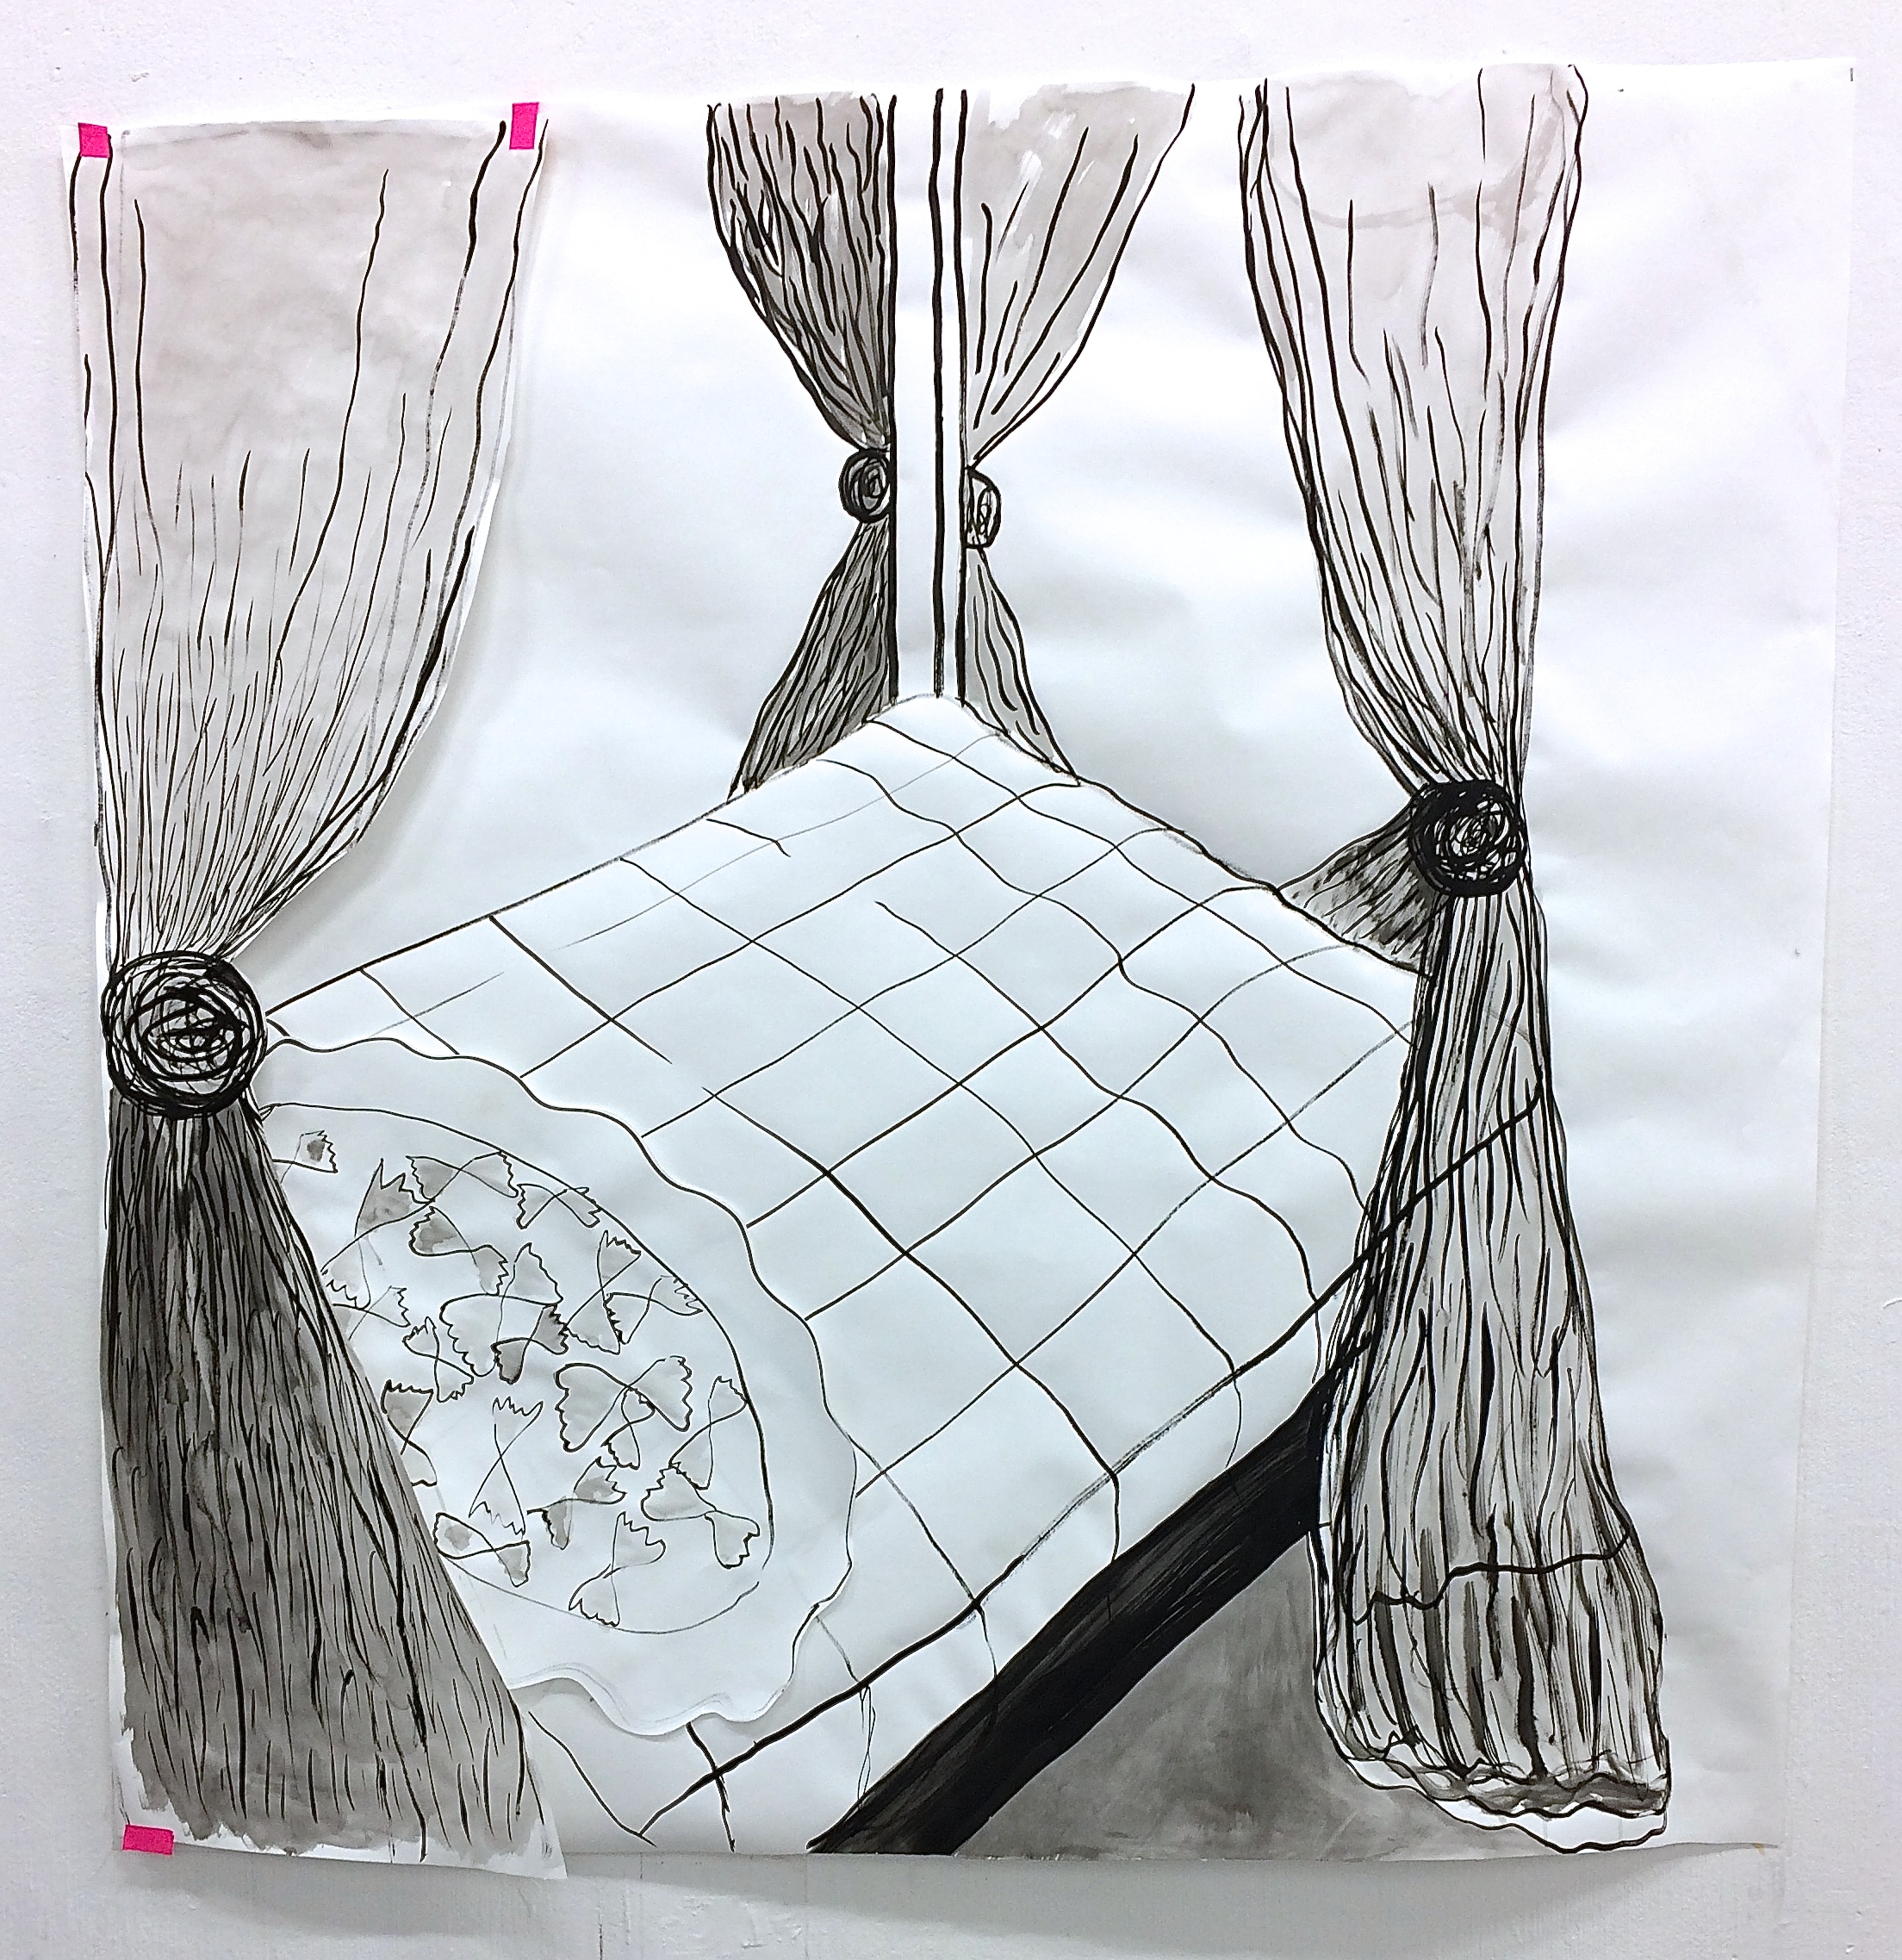 Farfalle in a four poster , ink on paper, 2018